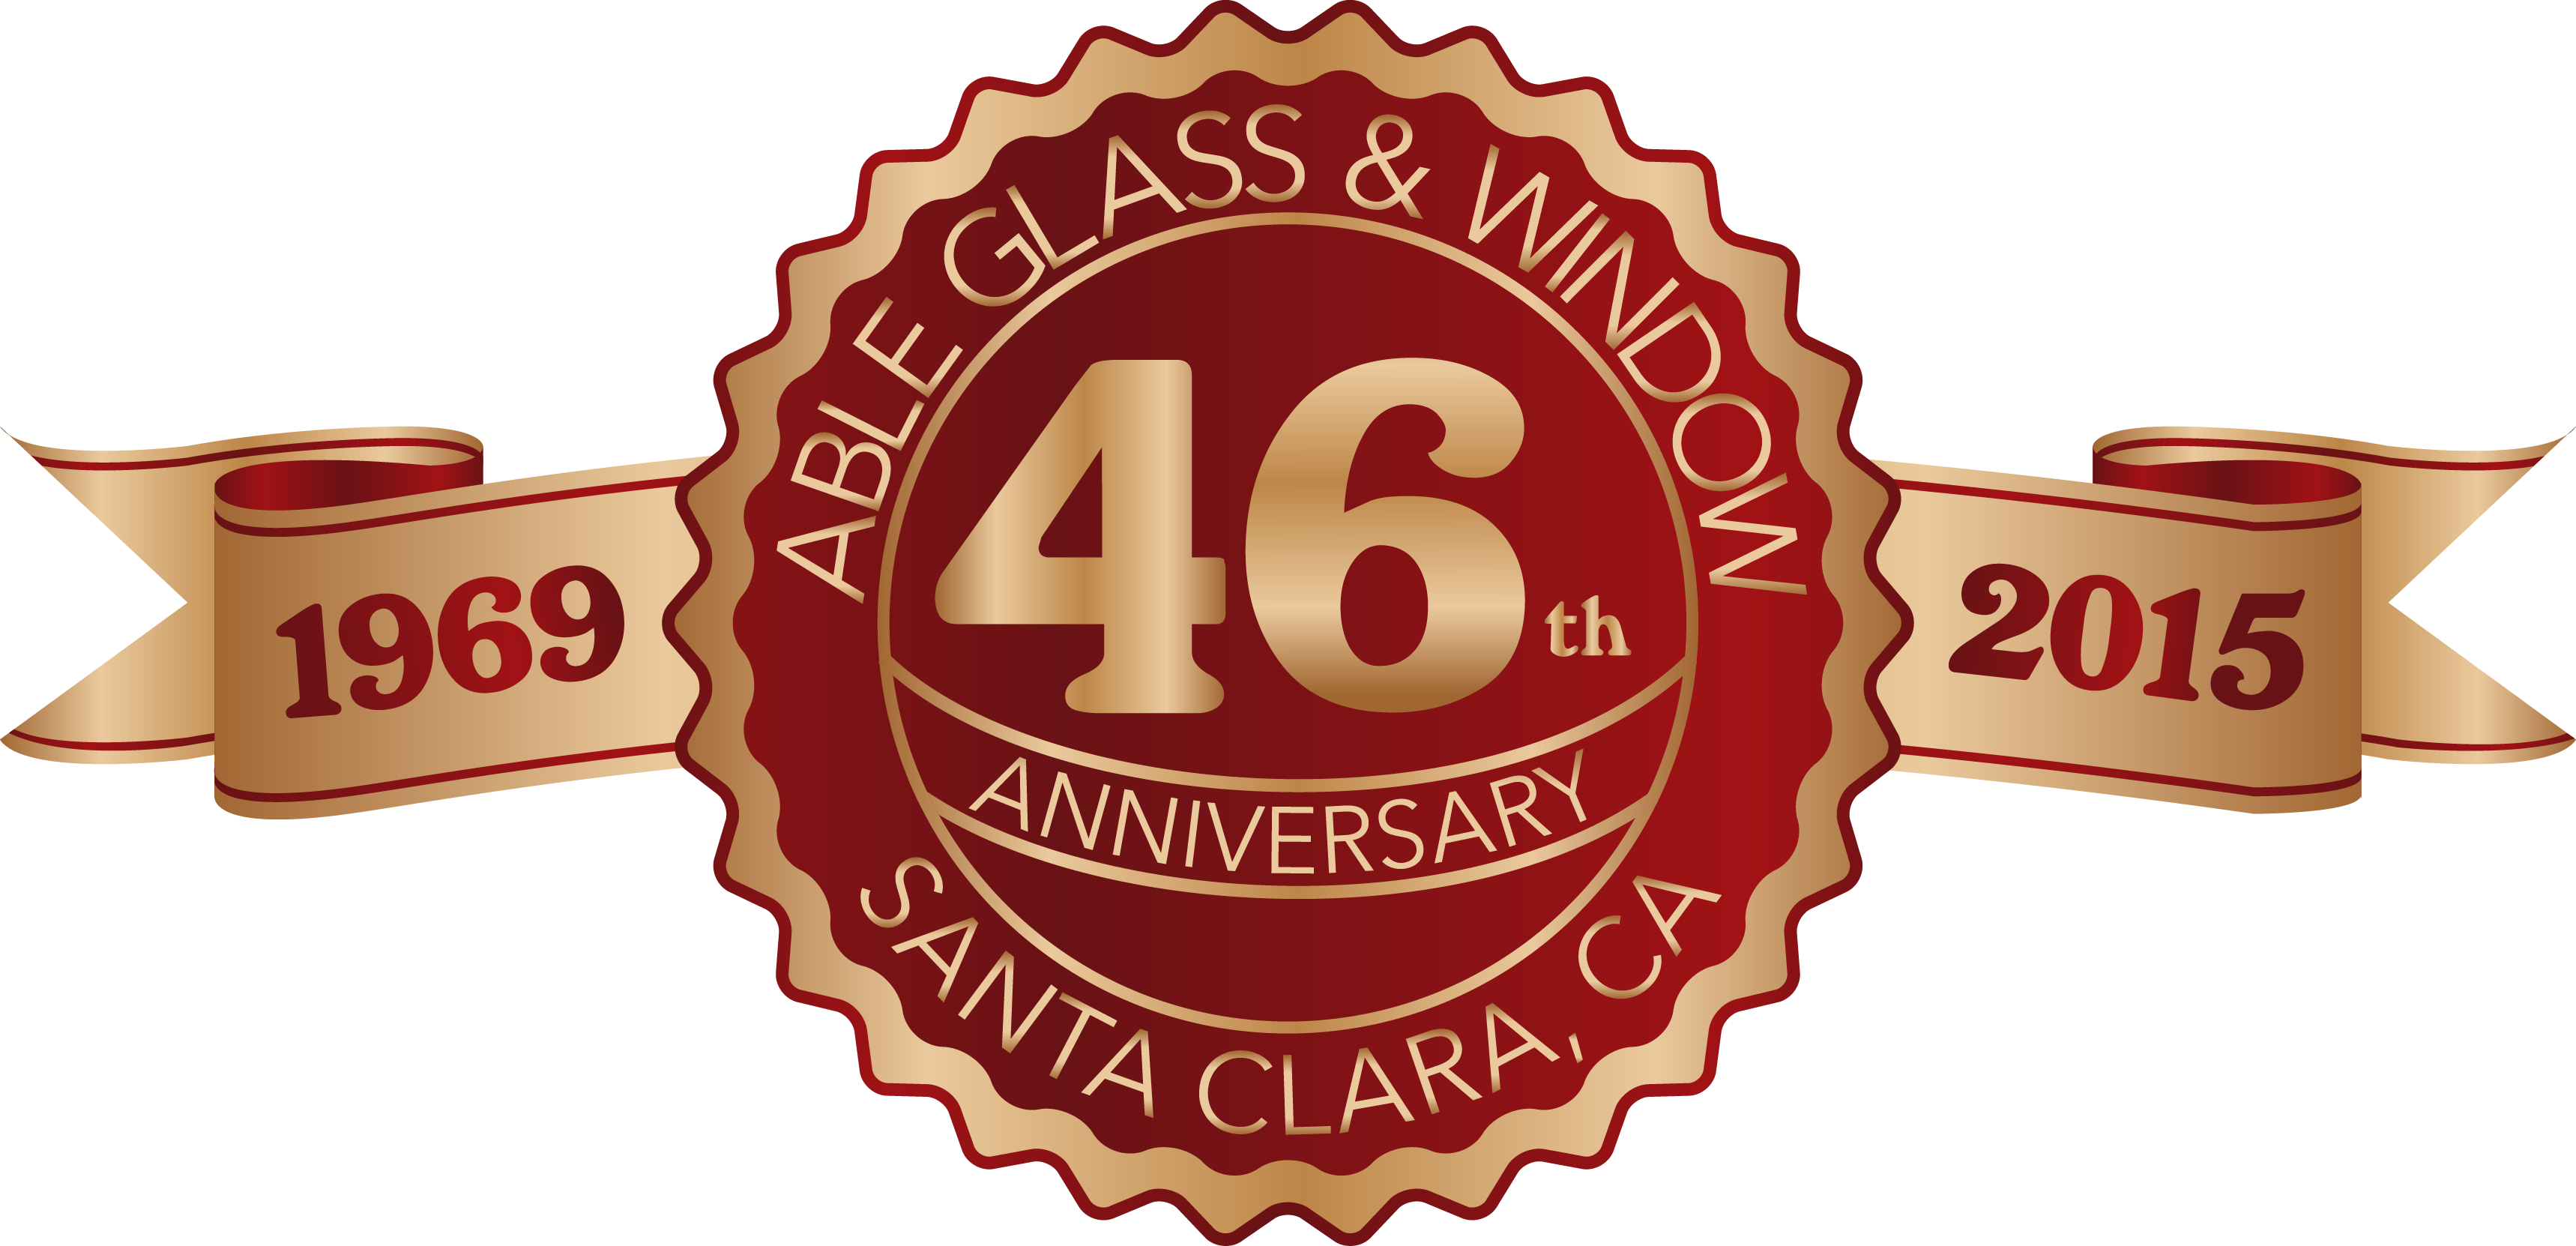 46th year anniversary label in red and gold